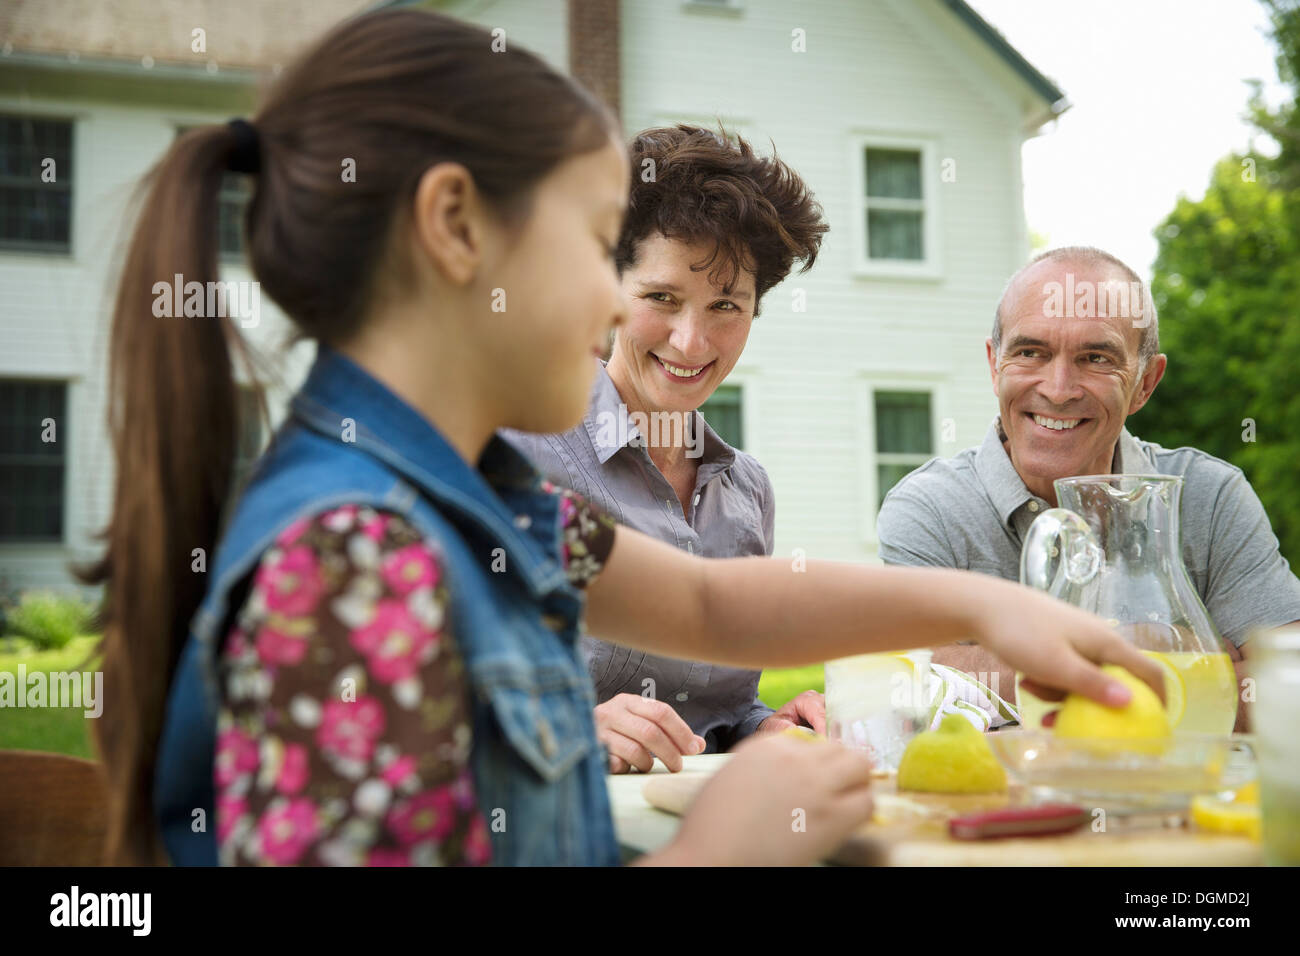 A summer family gathering at a farm. A family group, parents and children. Making fresh lemonade. Stock Photo